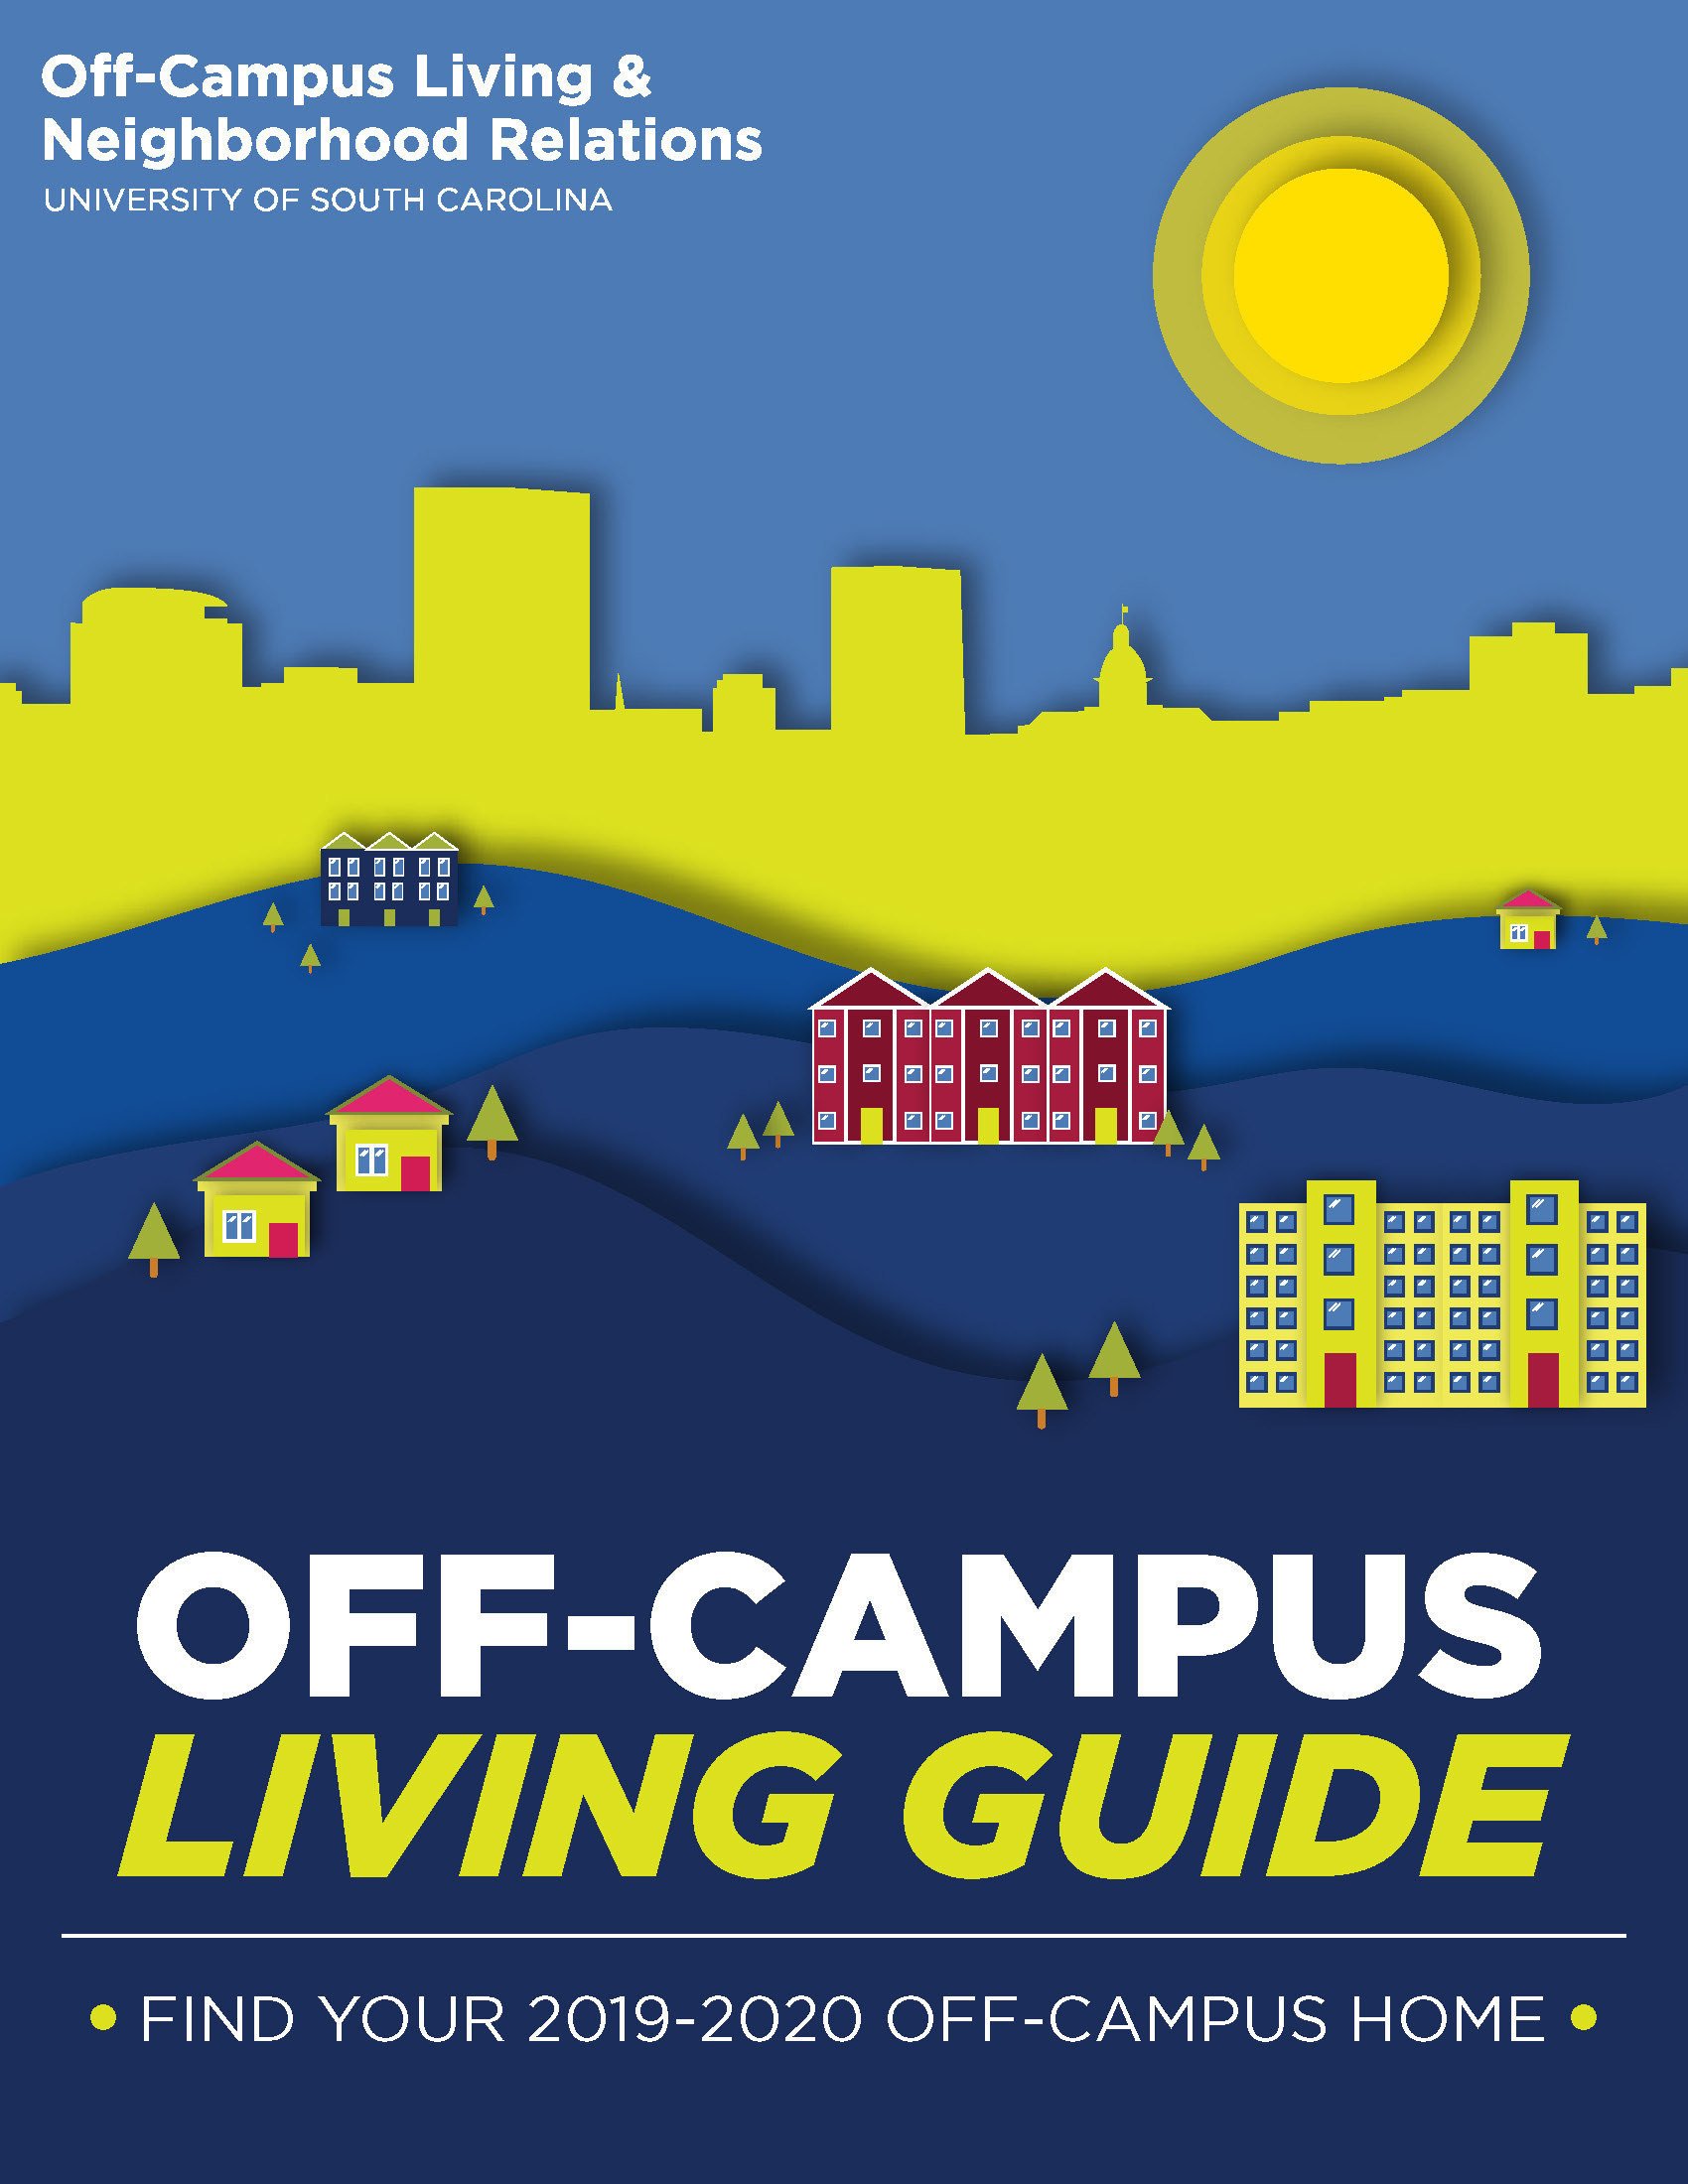 guidebook for off-campus living